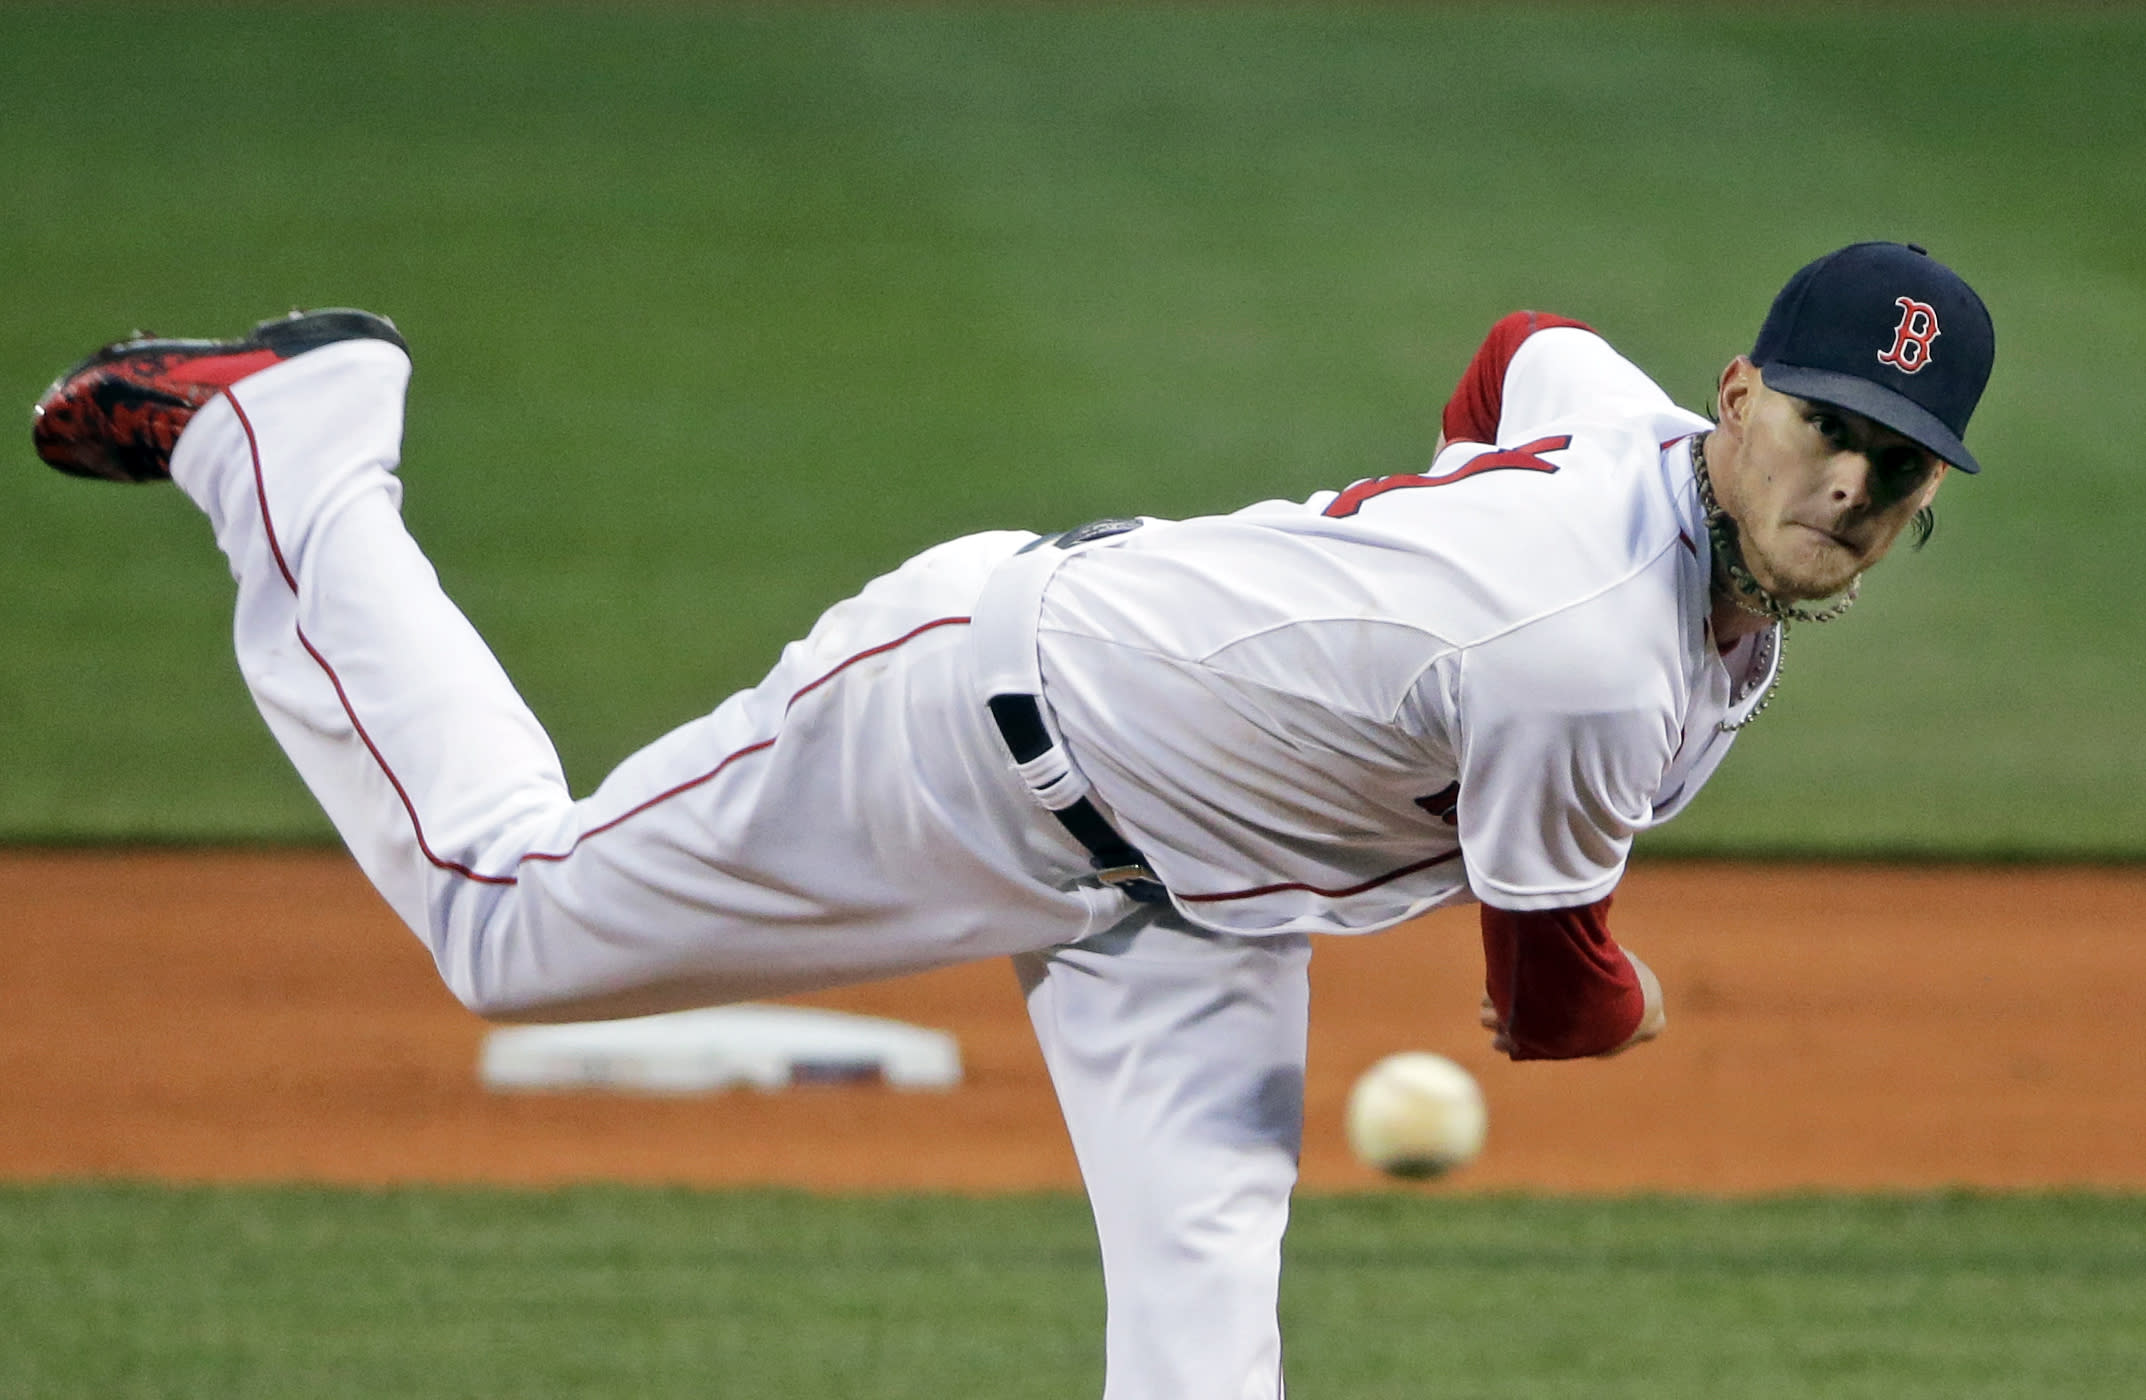 Boston ends skid with 1-0 win over Twins